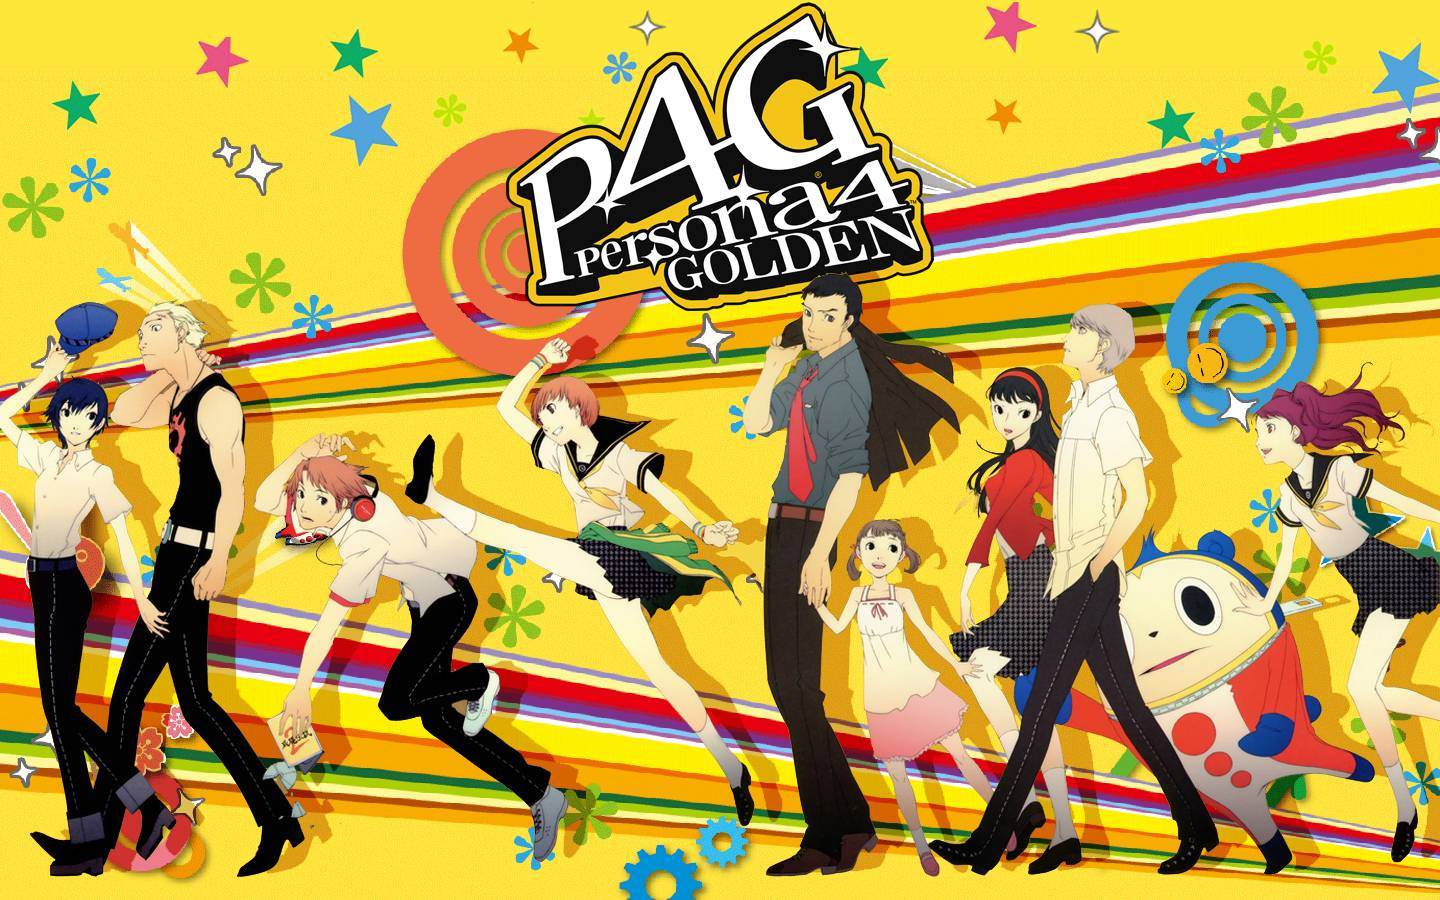 Persona 4 Golden is $20 on PSN - PlayStation Discussion - GameSpot